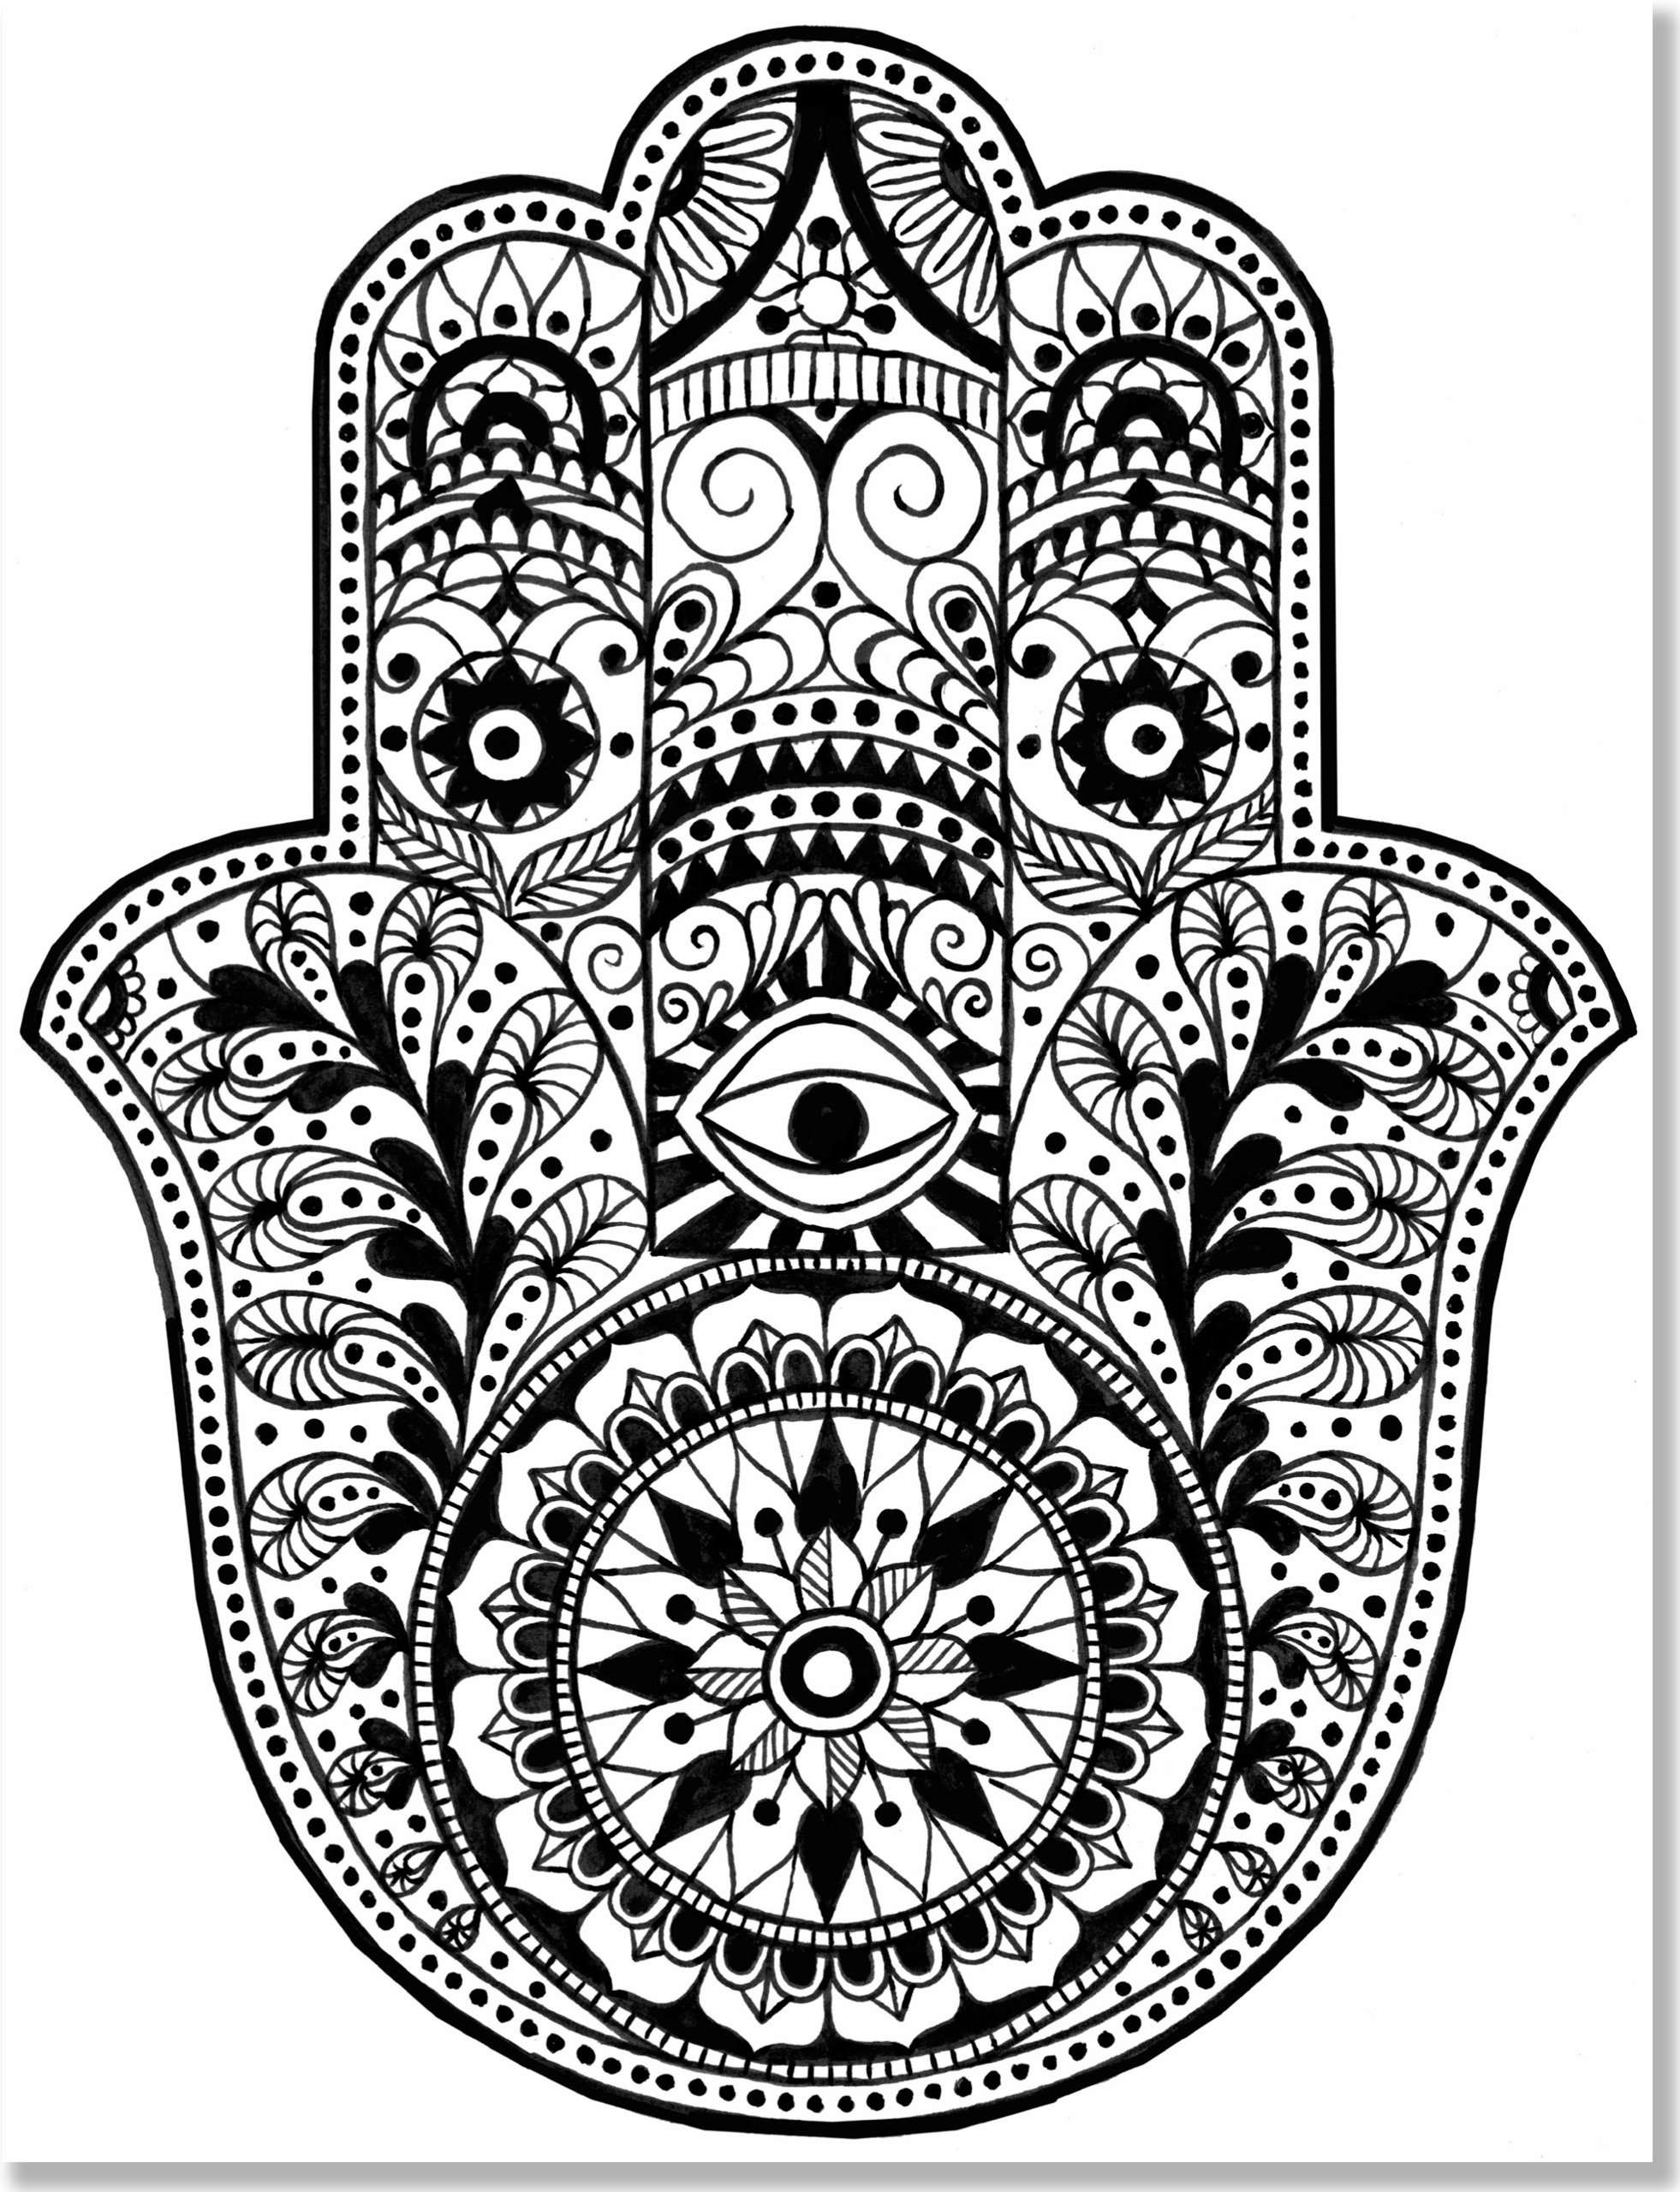 Colouring for adults benefits - Amazon Com Mandala Designs Adult Coloring Book 31 Stress Relieving Designs Studio 9781441317445 Peter Pauper Press Books